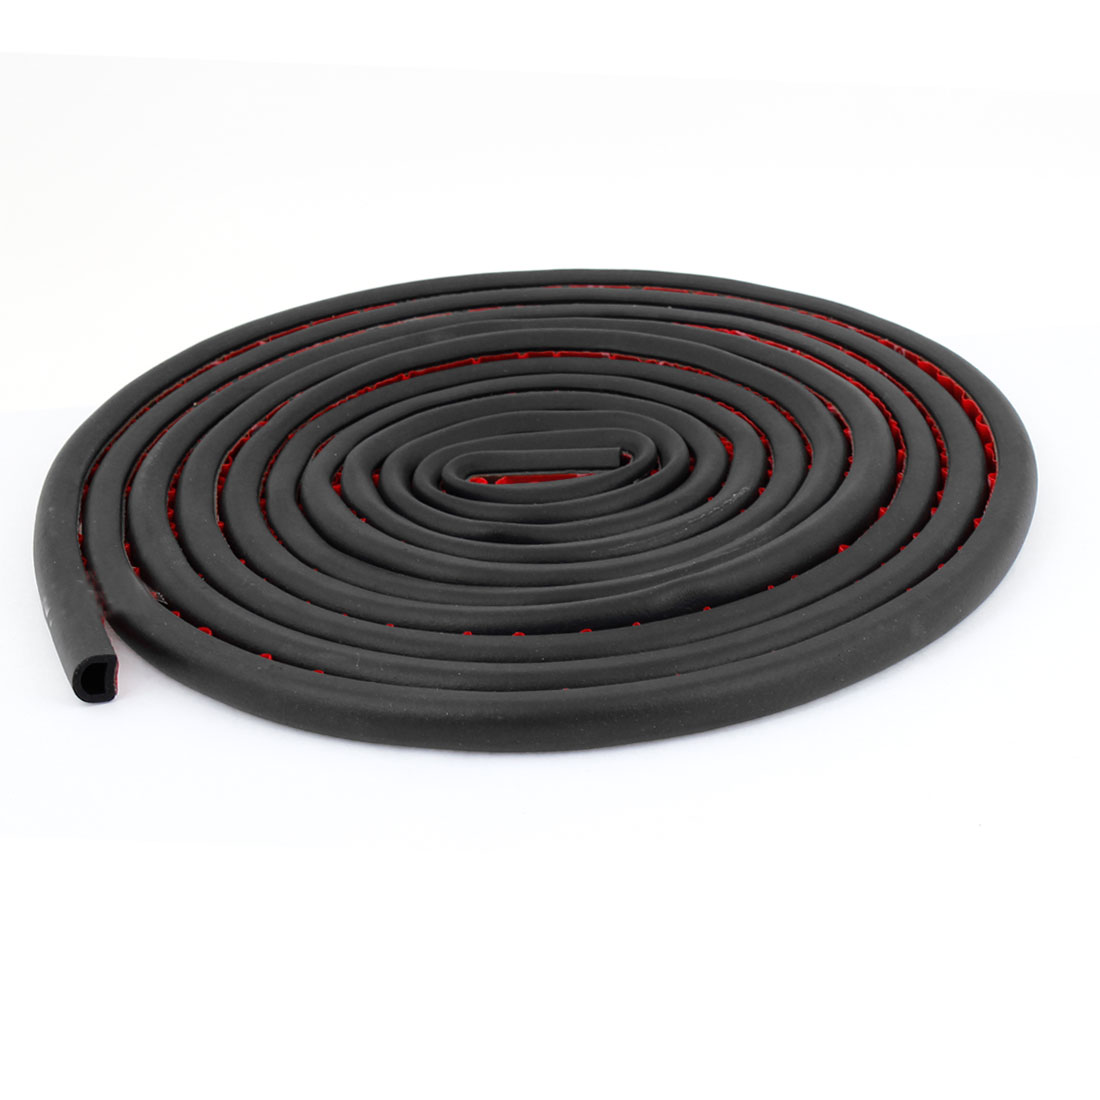 Black Rubber D Type Auto Door Window Noise Sealed Strip Weatherstrip 5 Meters